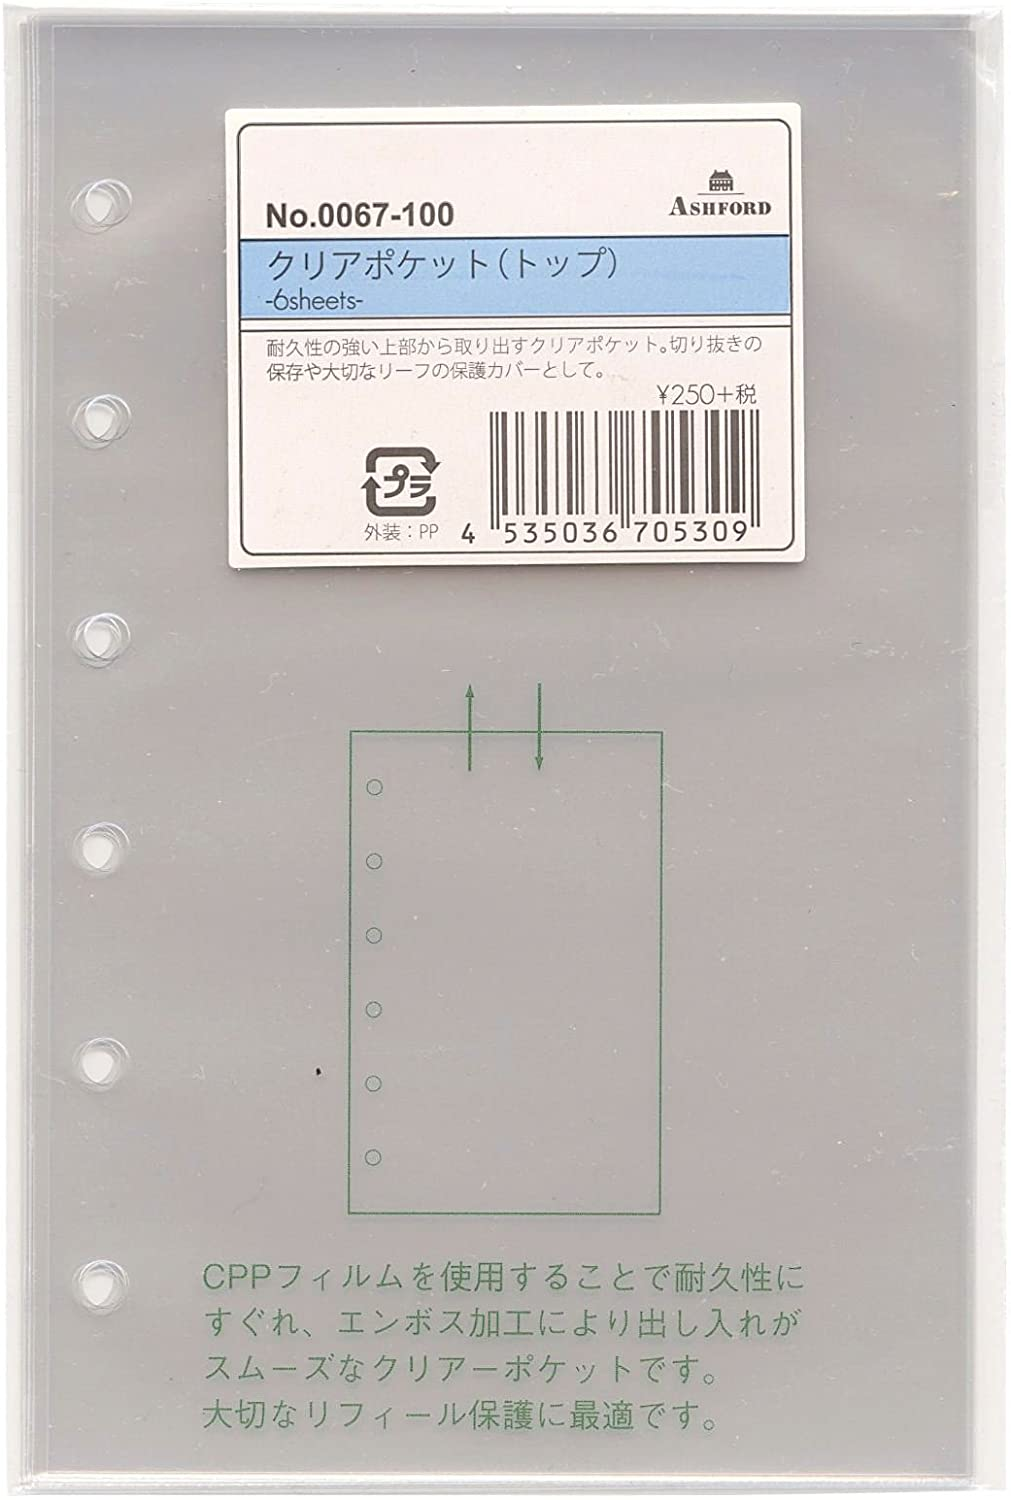 Ashford Mini size 6-hole 5 ☆ very popular personal organizer Limited price clear pocket refill